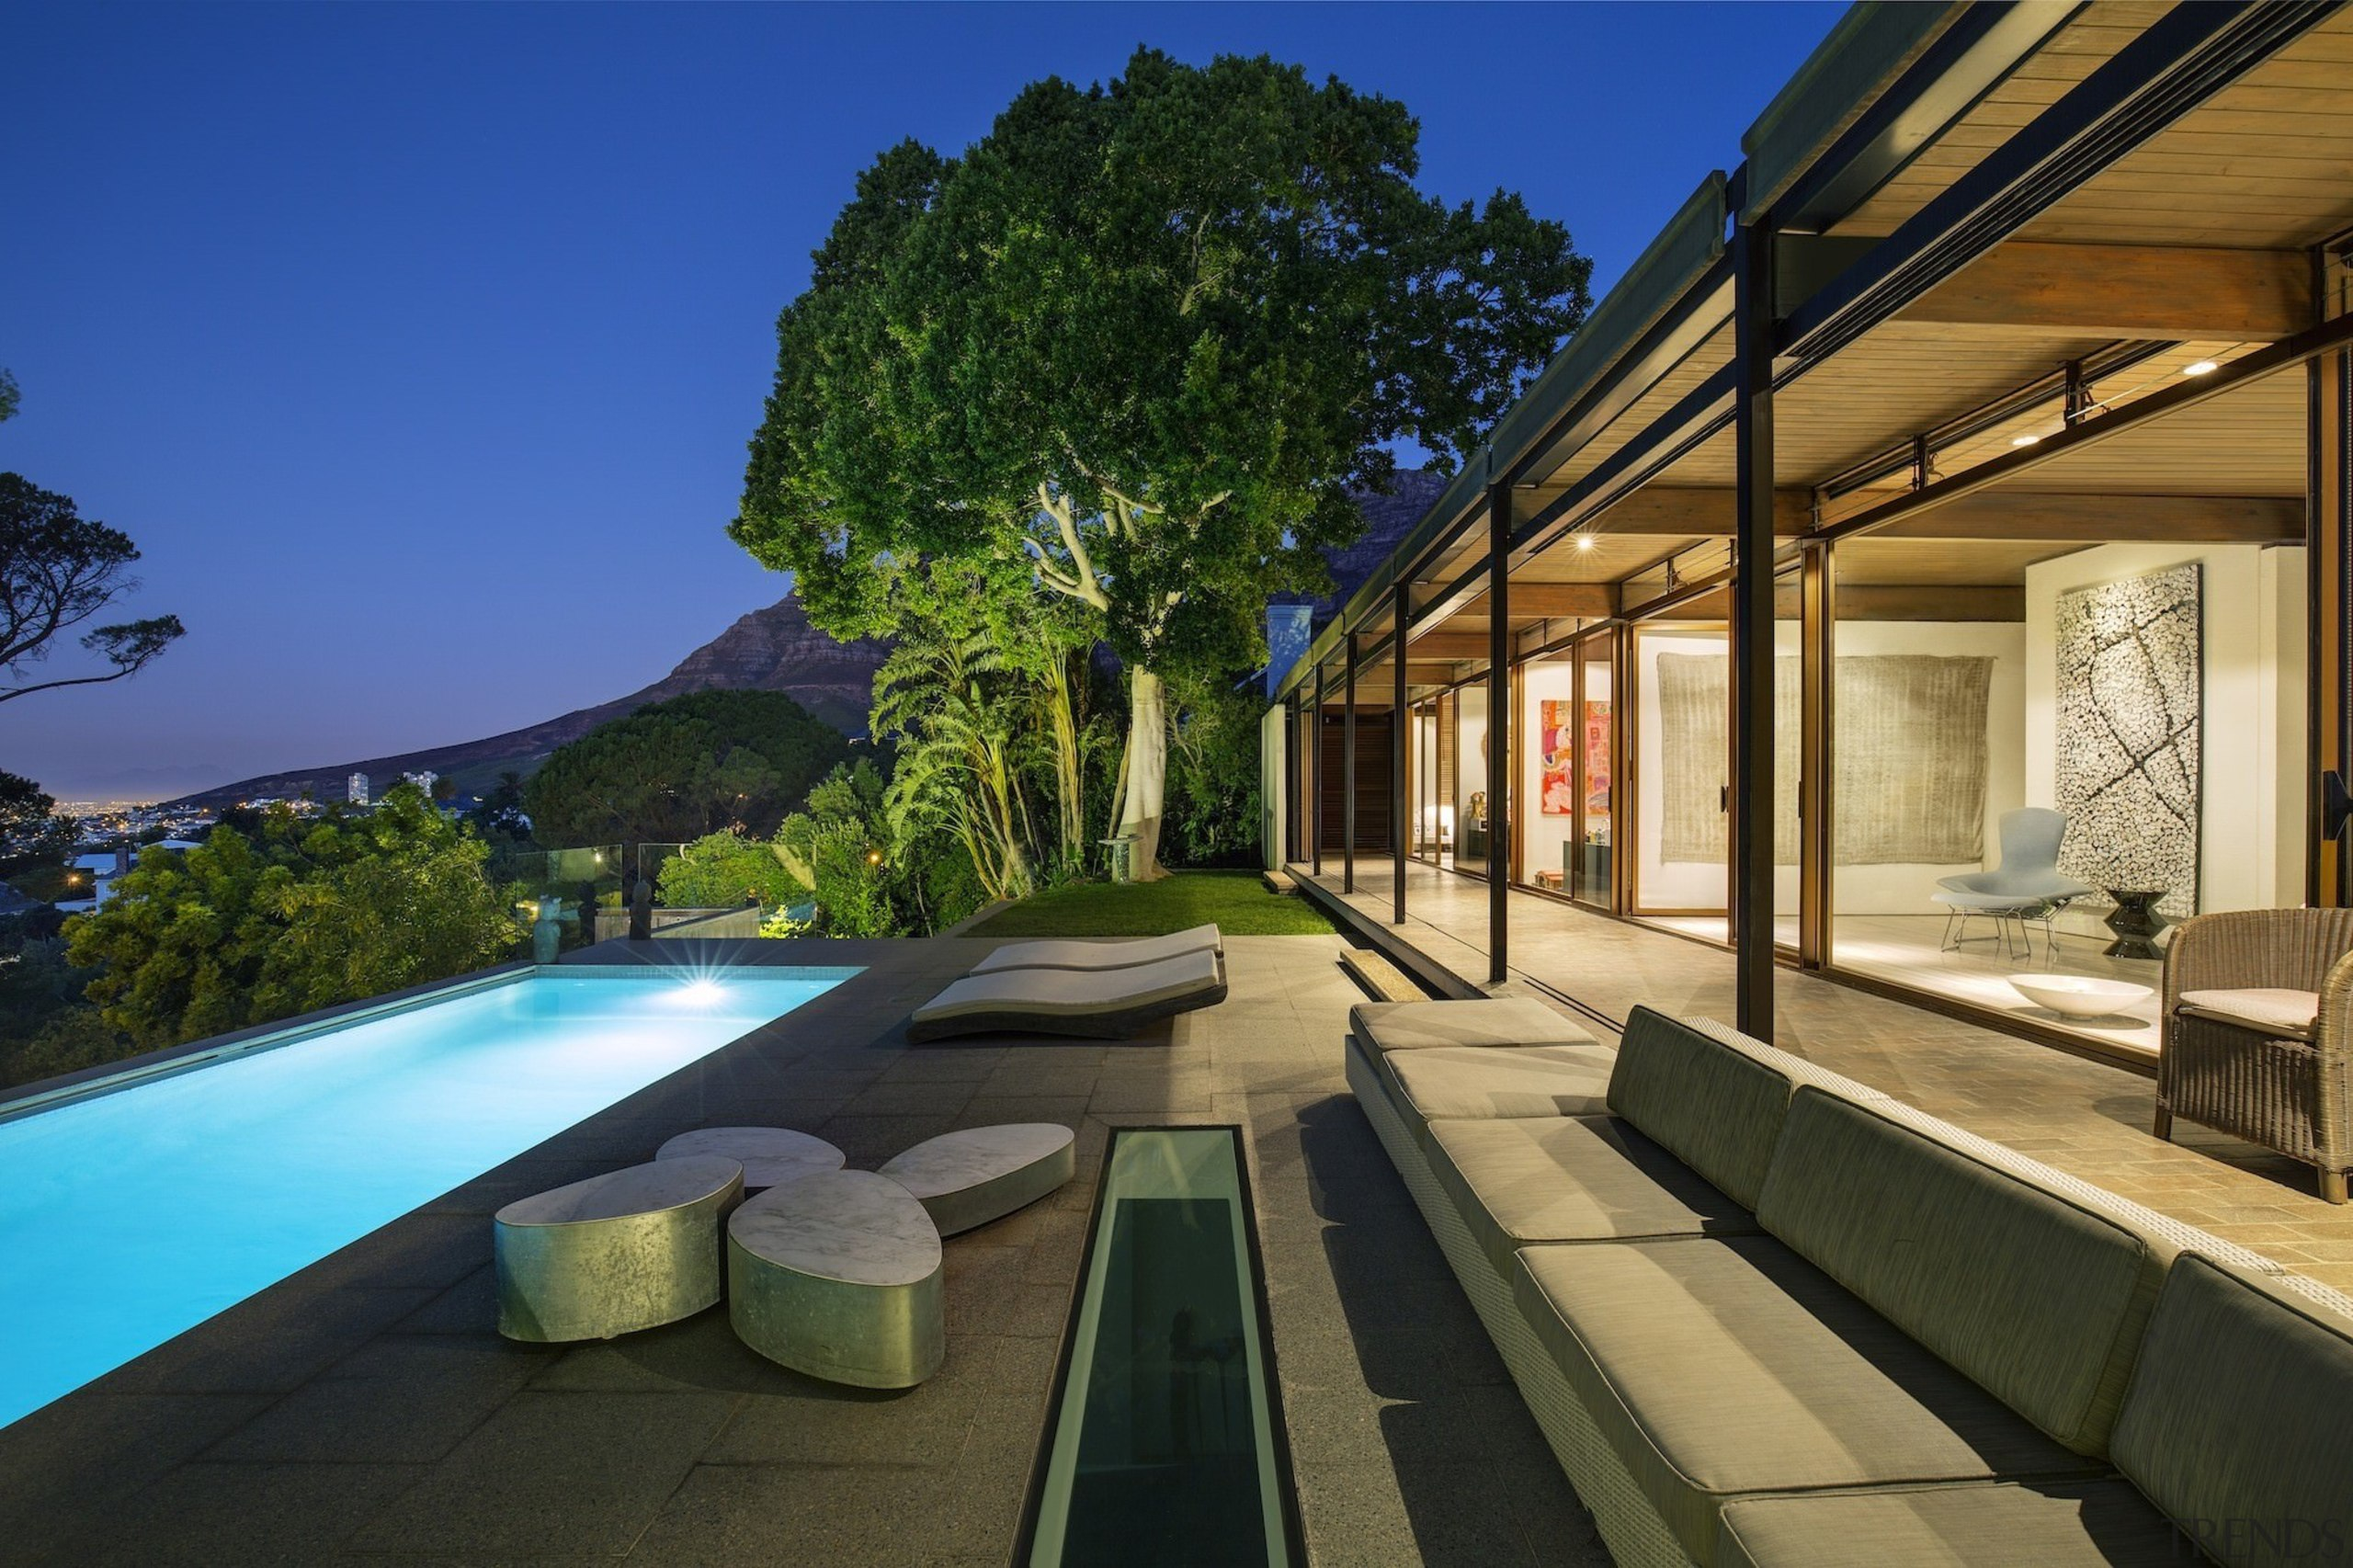 At night, the home has picturesque views down architecture, estate, home, house, leisure, property, real estate, resort, swimming pool, villa, brown